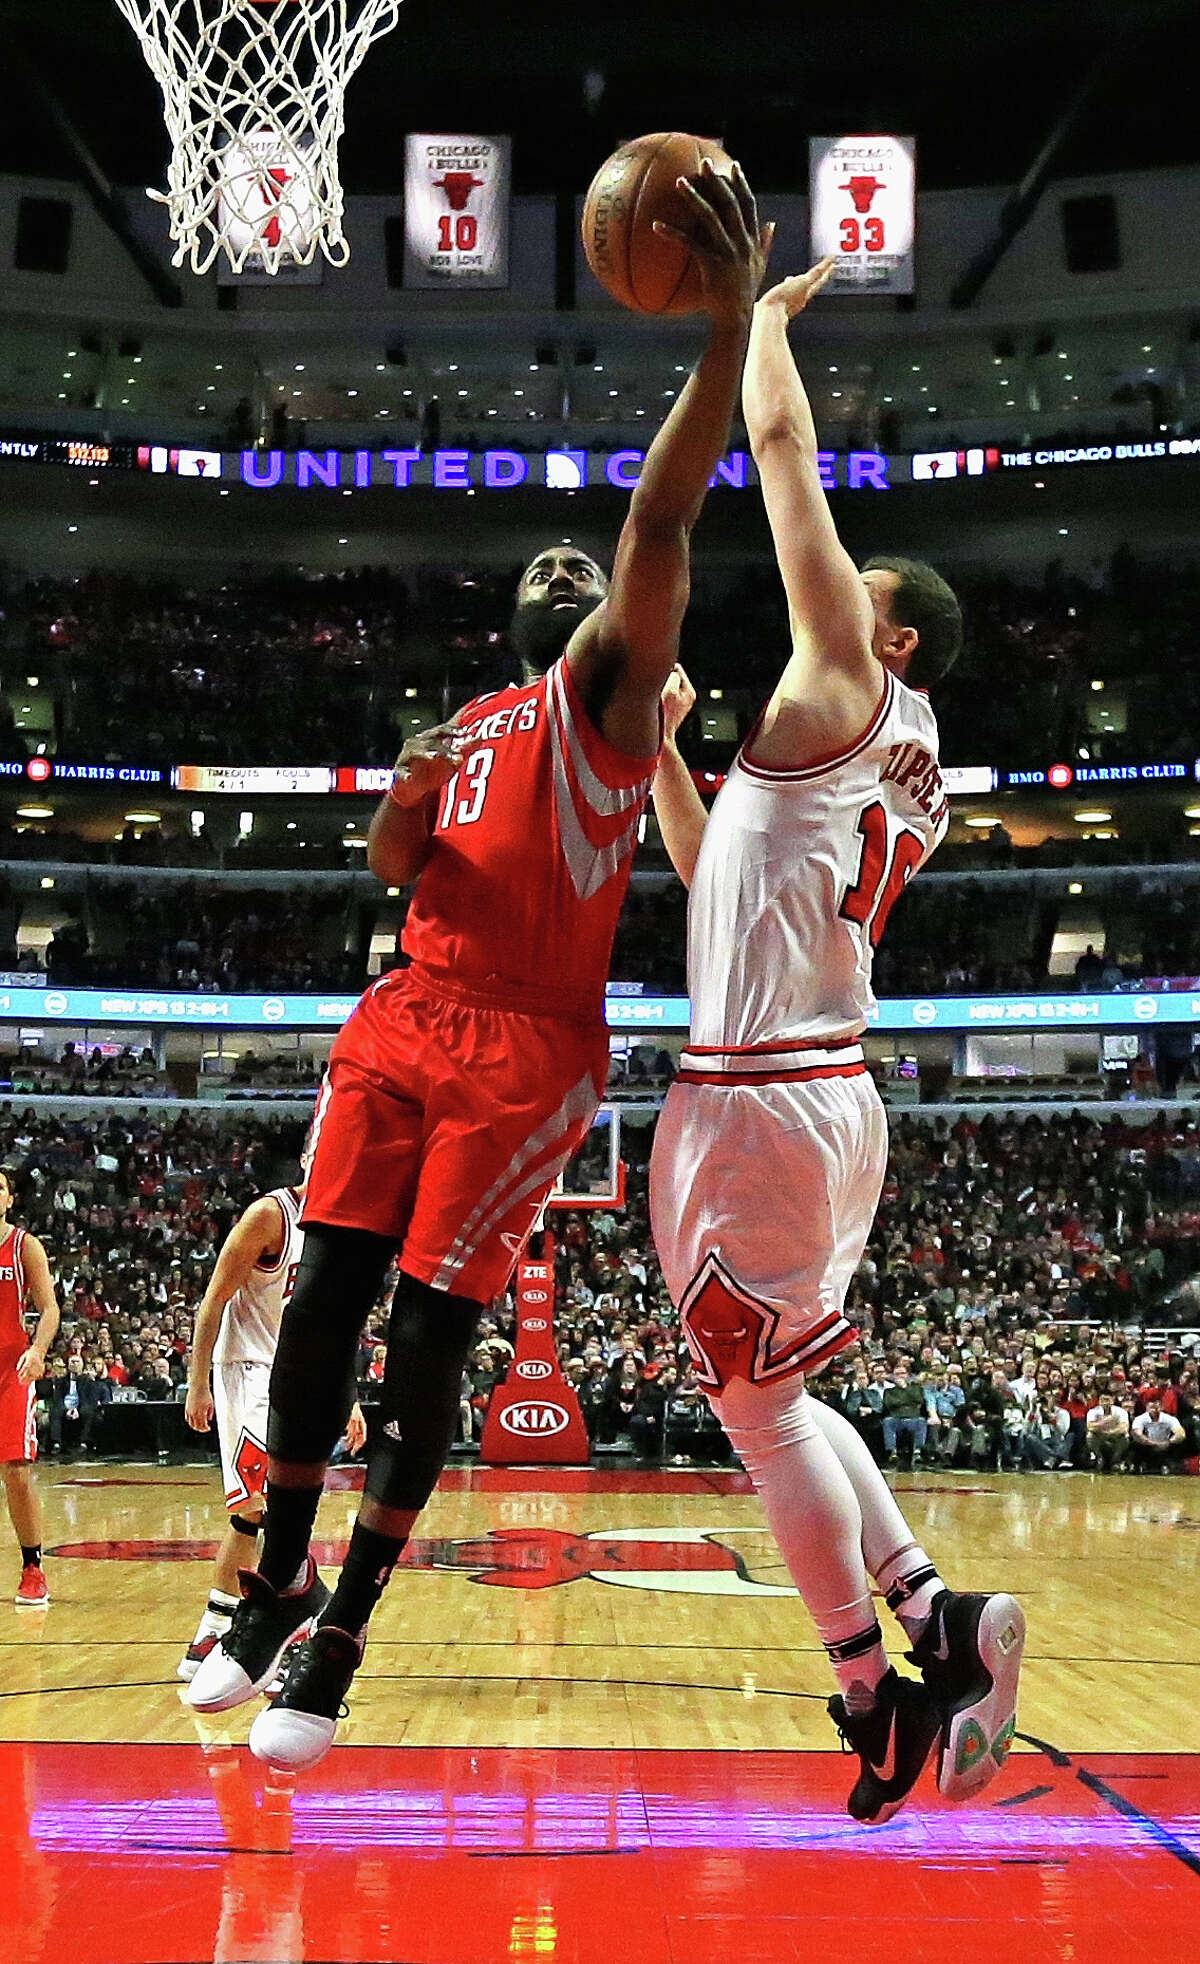 CHICAGO, IL - MARCH 10: James Harden #13 of the Houston Rockets puts up a shot Paul Zipser #16 of the Chicago Bulls at the United Center on March 10, 2017 in Chicago, Illinois. The Rockets defeated the Bulls 115-94. NOTE TO USER: User expressly acknowledges and agrees that, by downloading and/or using this photograph, user is consenting to the terms and conditions of the Getty Images License Agreement. (Photo by Jonathan Daniel/Getty Images)